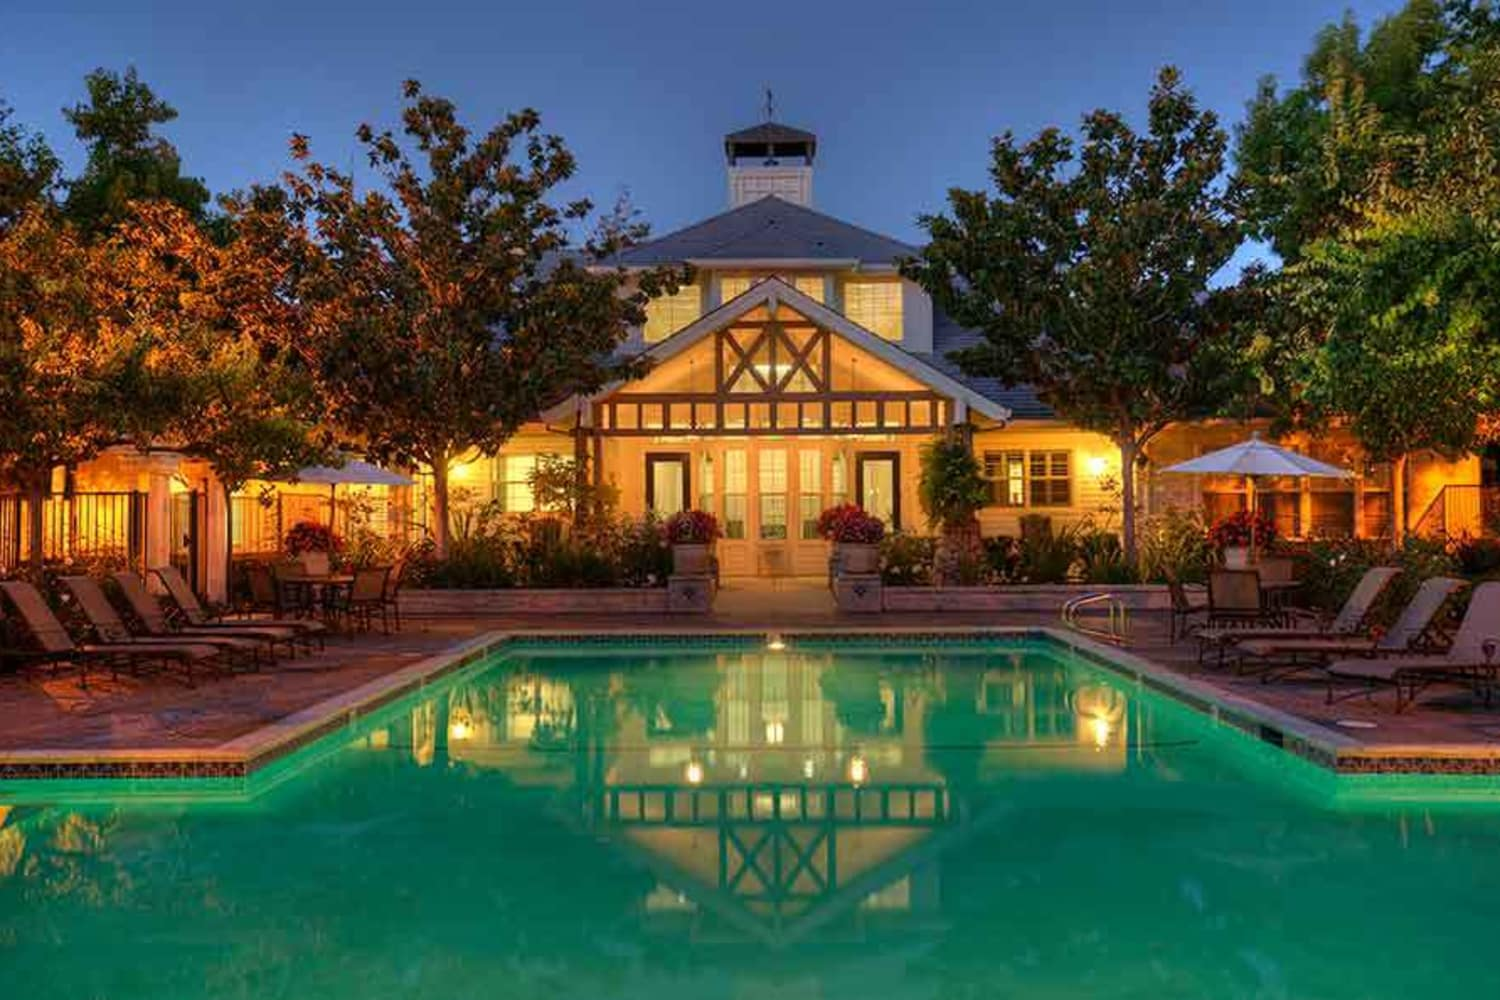 Pool at night at Nantucket Apartments in Santa Clara, California